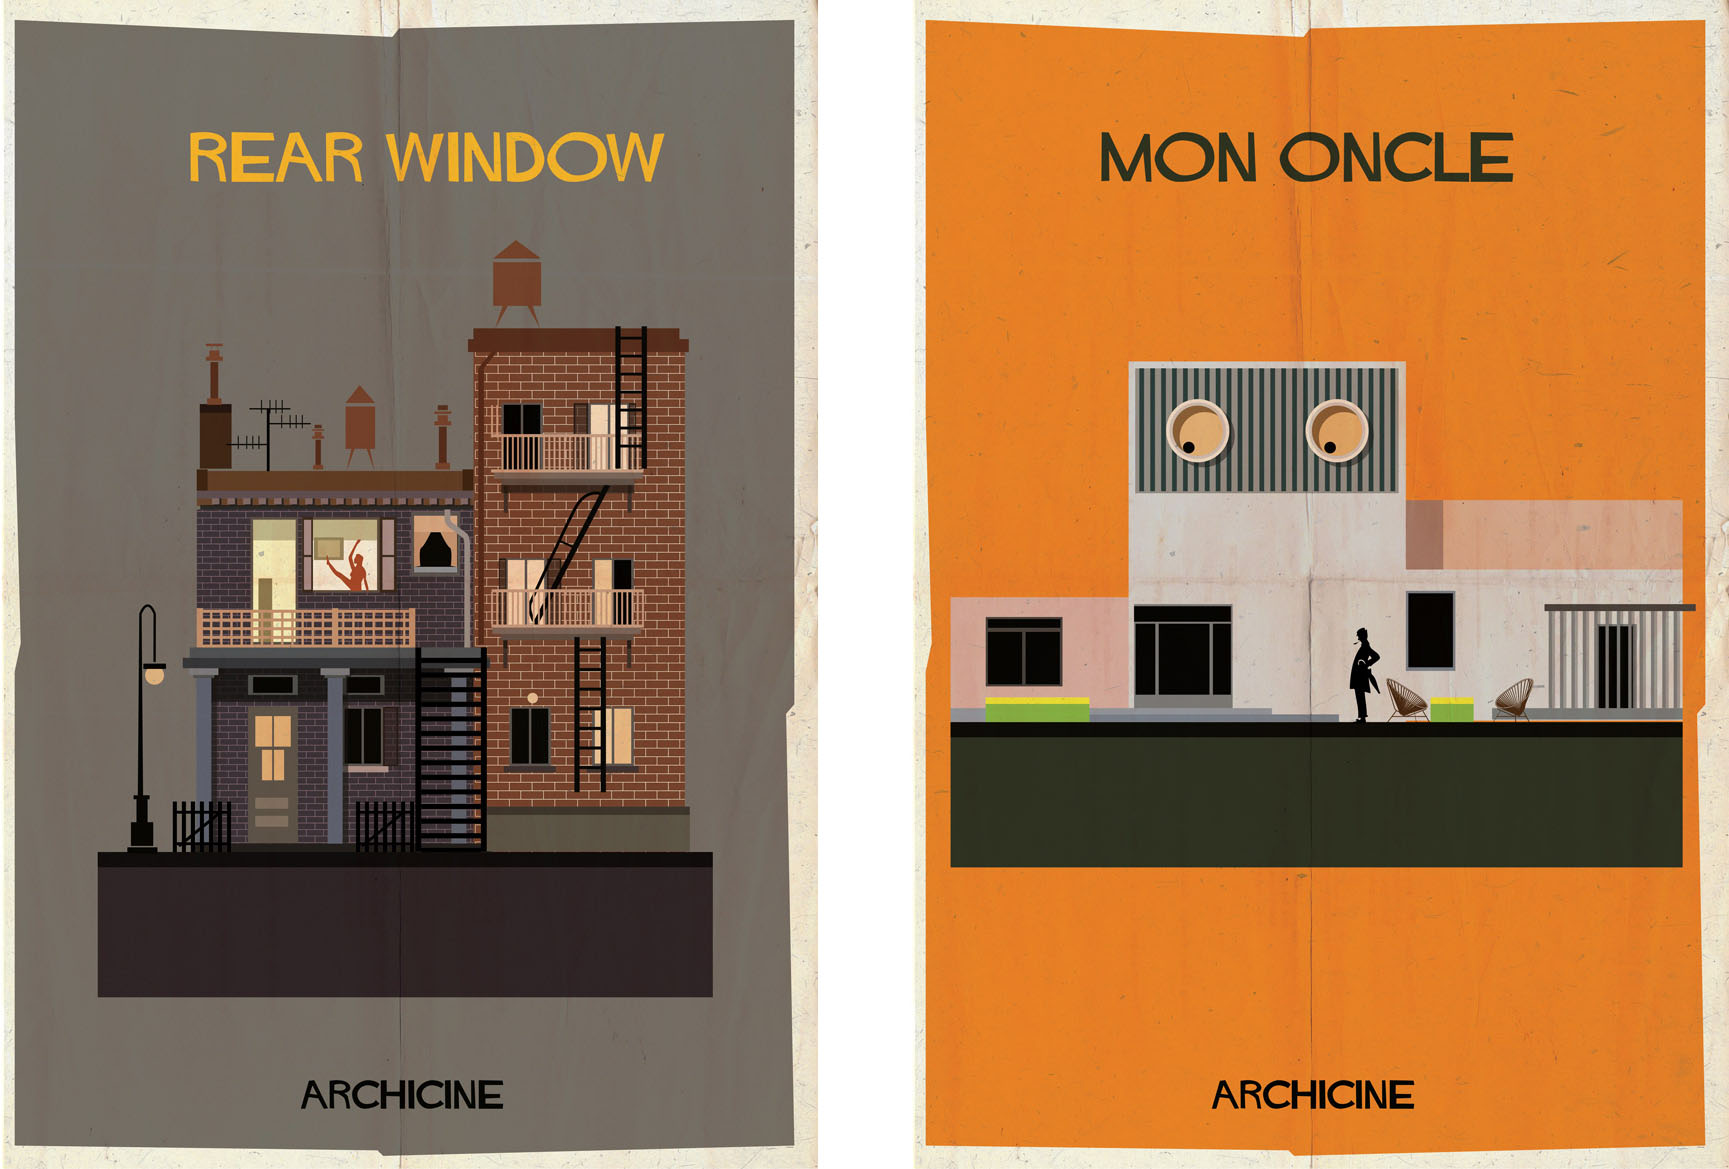 Rear window & Mon oncle: Archiciné by Federico Babina